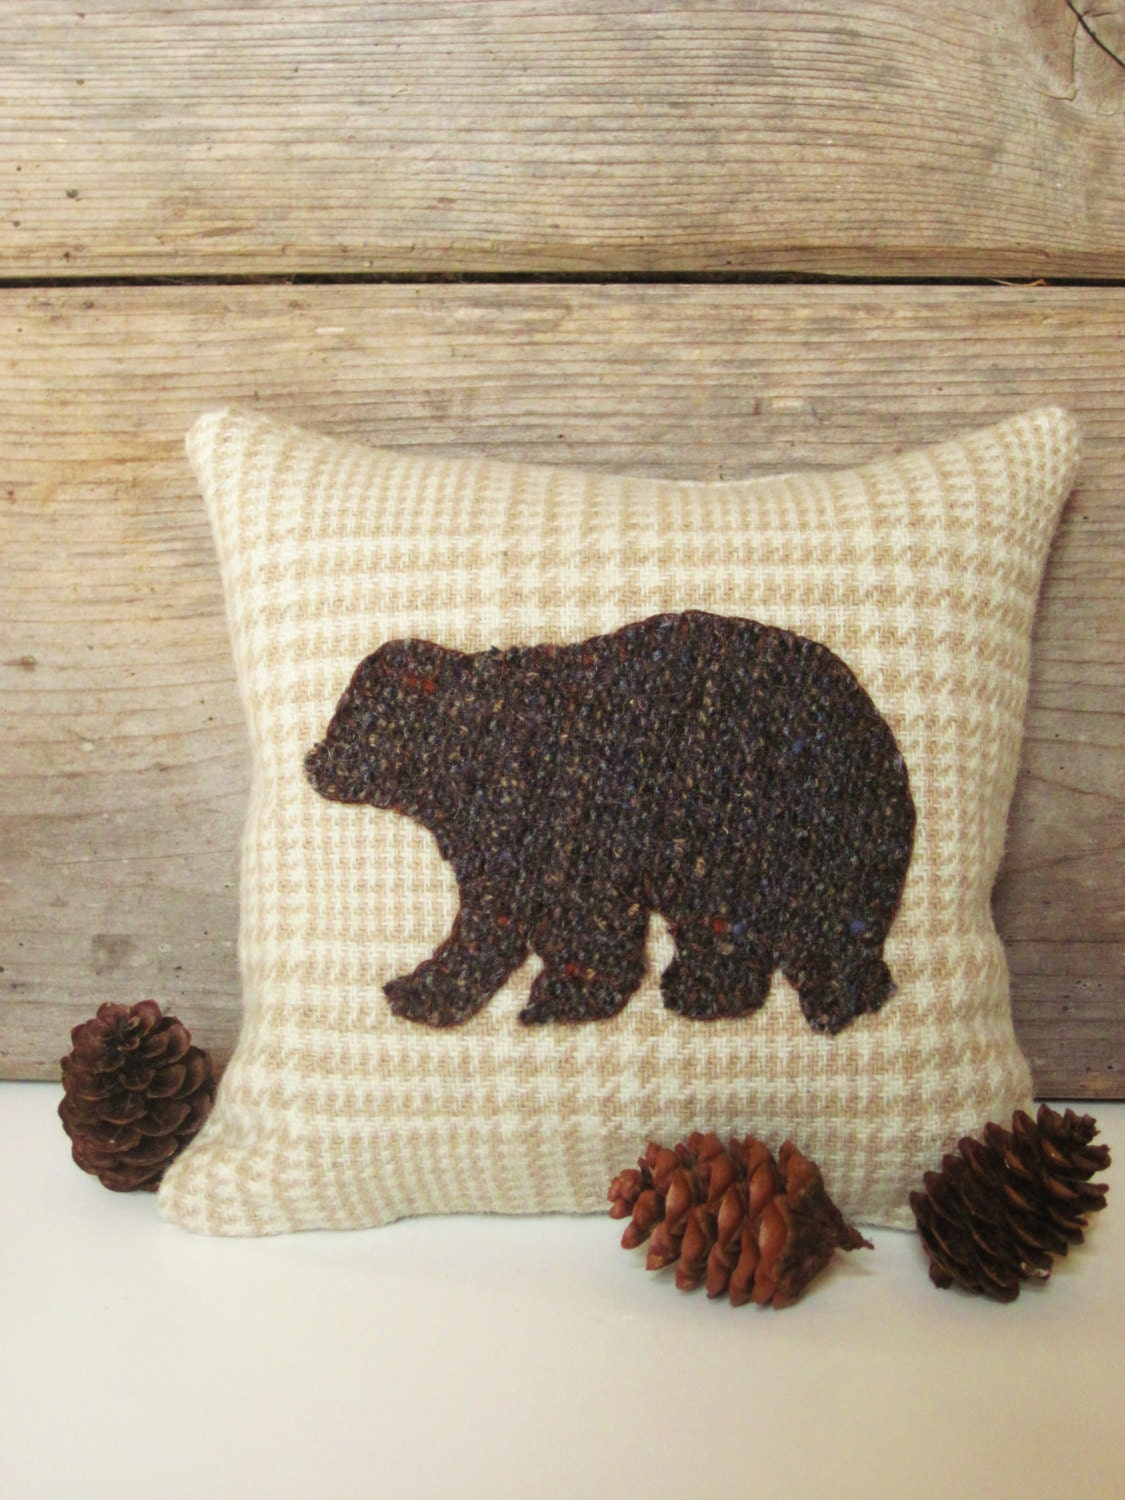 Decorative Balsam Pillow / Brown Bear Pillow / Wool Pillow / Rustic Camp Pillow / Six Inch Pillow - AwayUpNorth